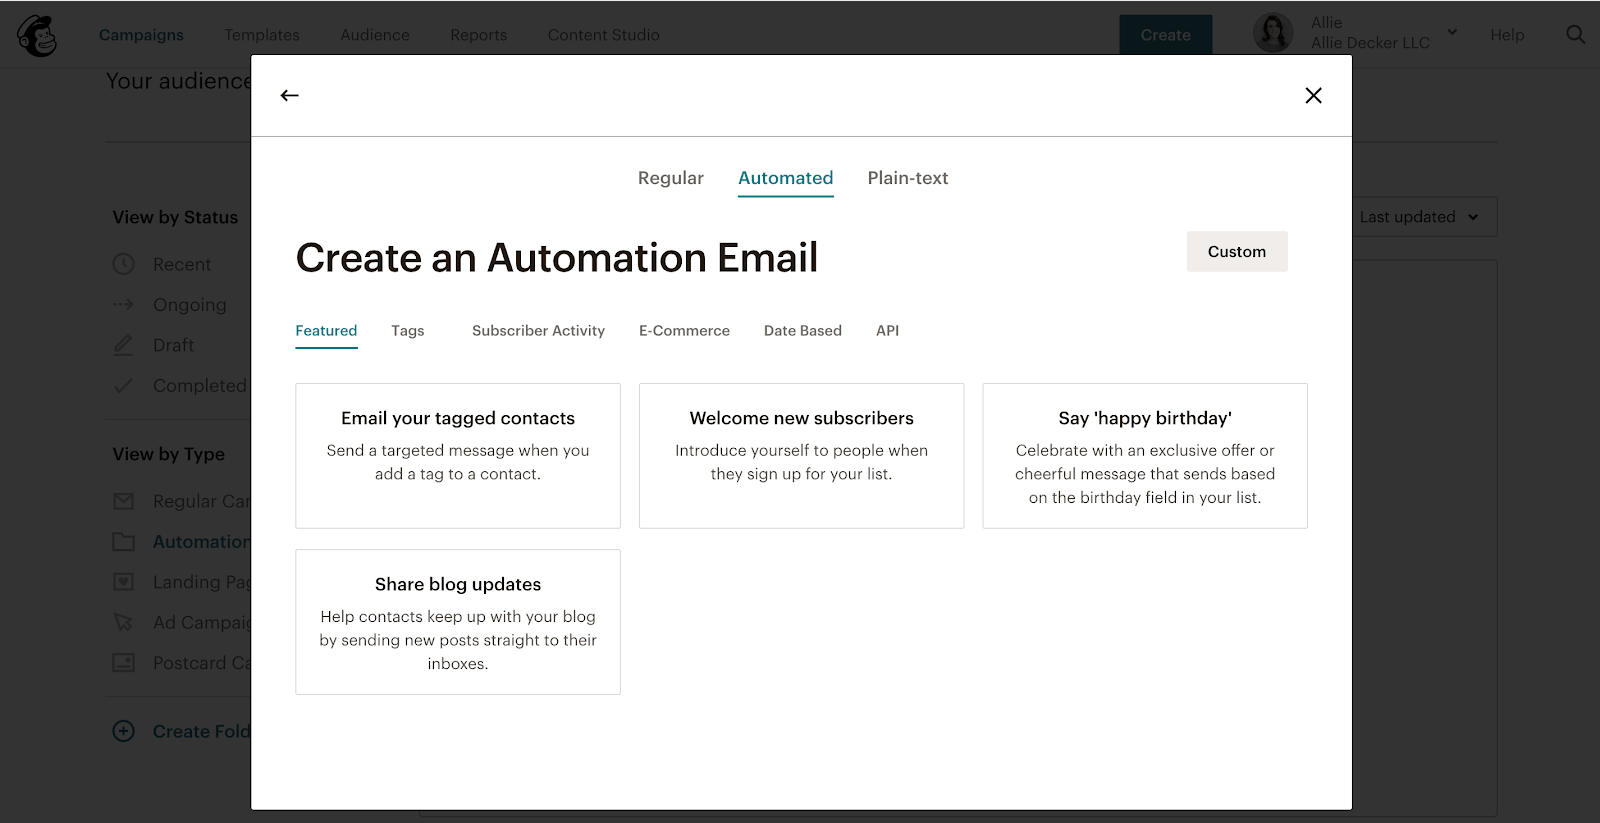 Mailchimp's automation options